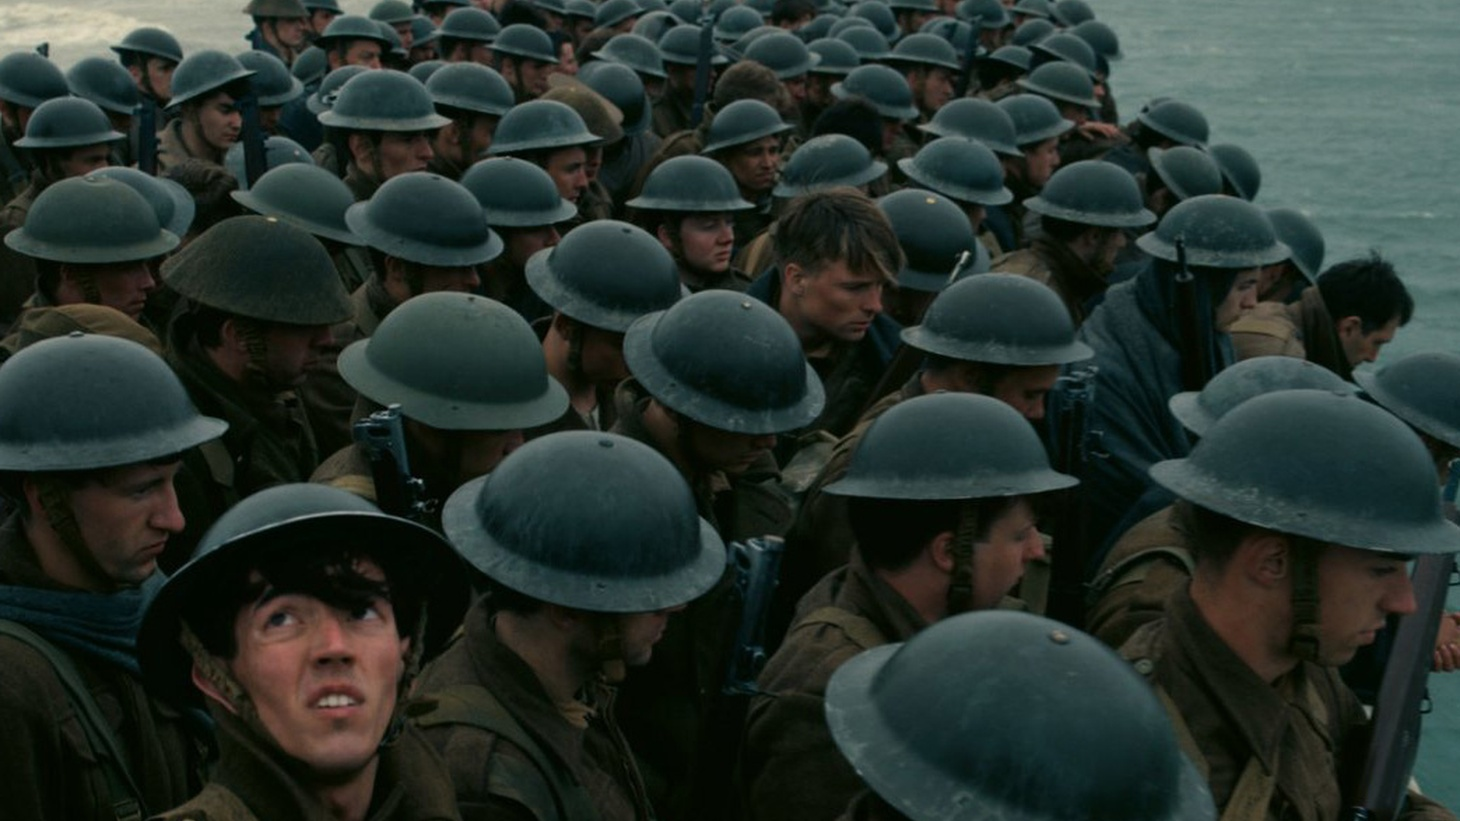 Christopher Nolan's Dunkirk is an astonishing evocation of a crucial event during the first year of World War II. It's something new in the annals of war films — an intimate epic.